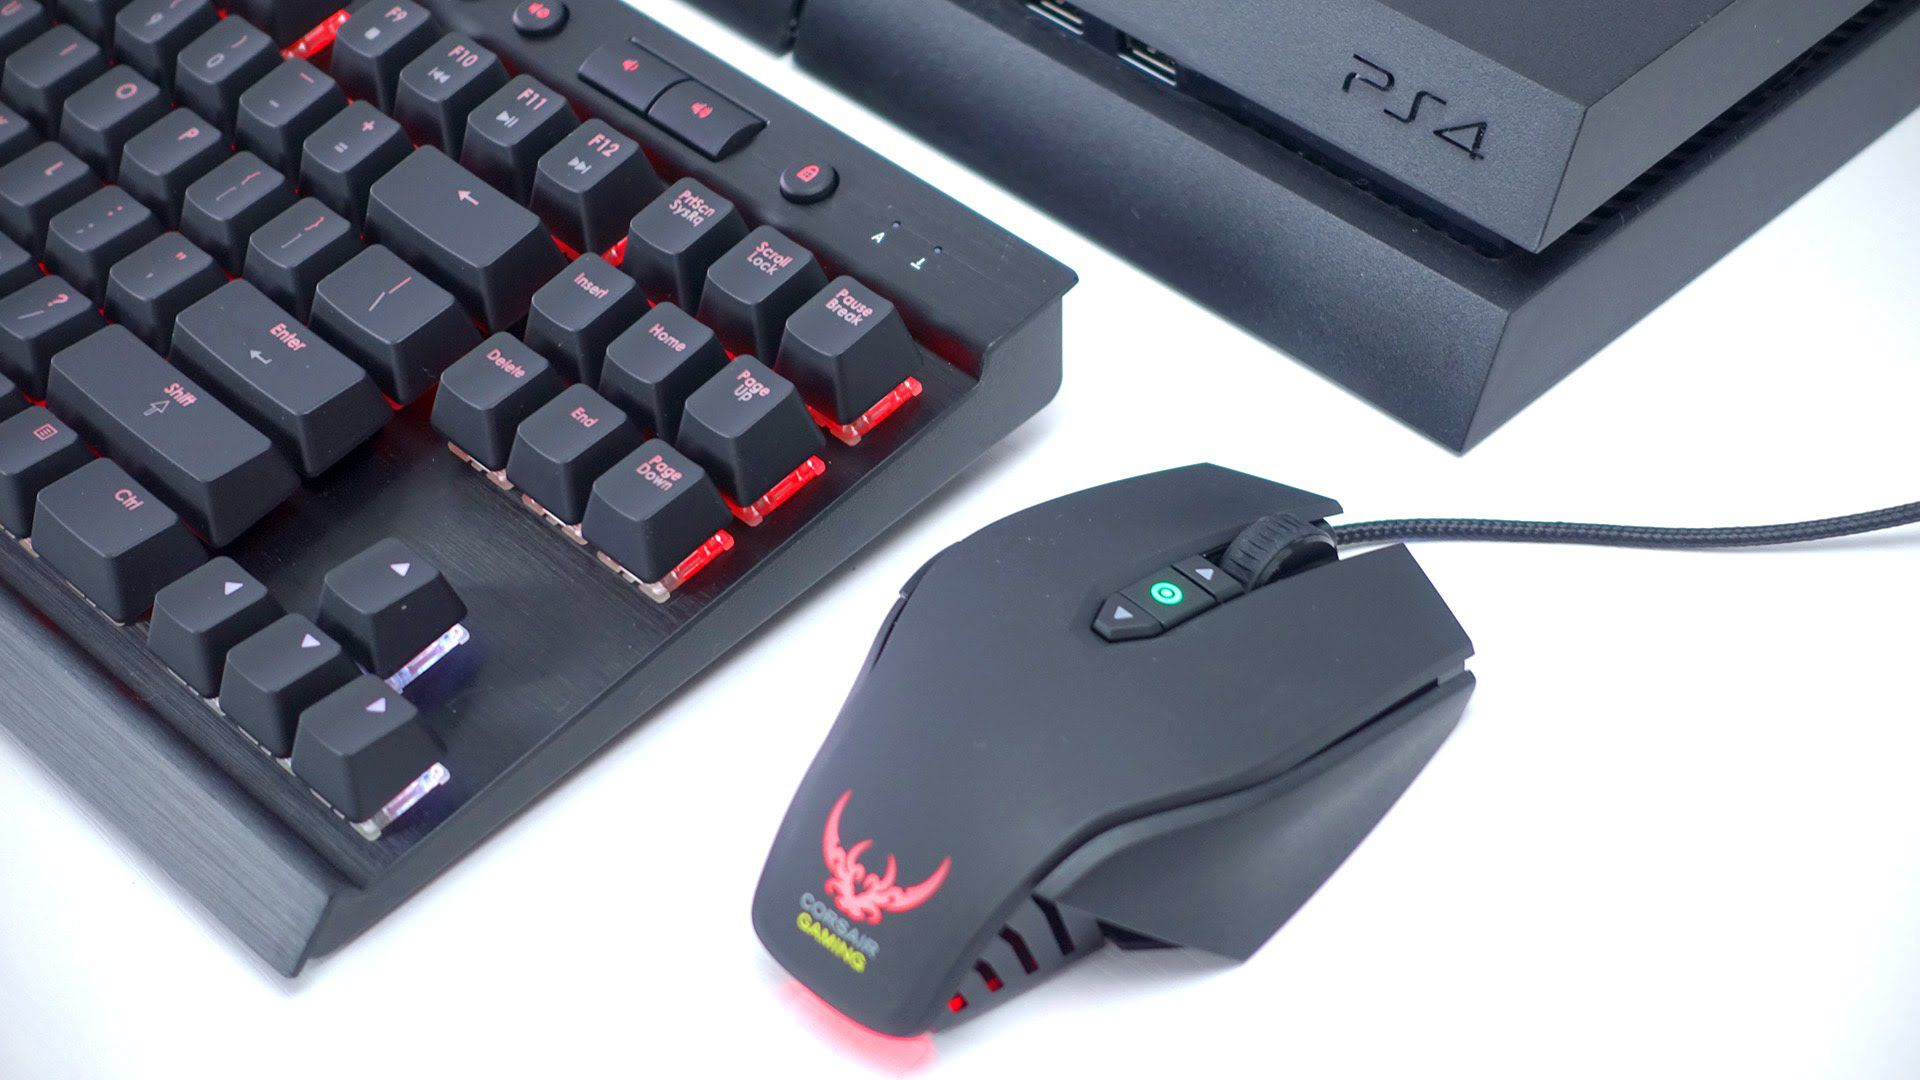 5 Best Gaming Mouse in India to Buy Online - Best Buy Review